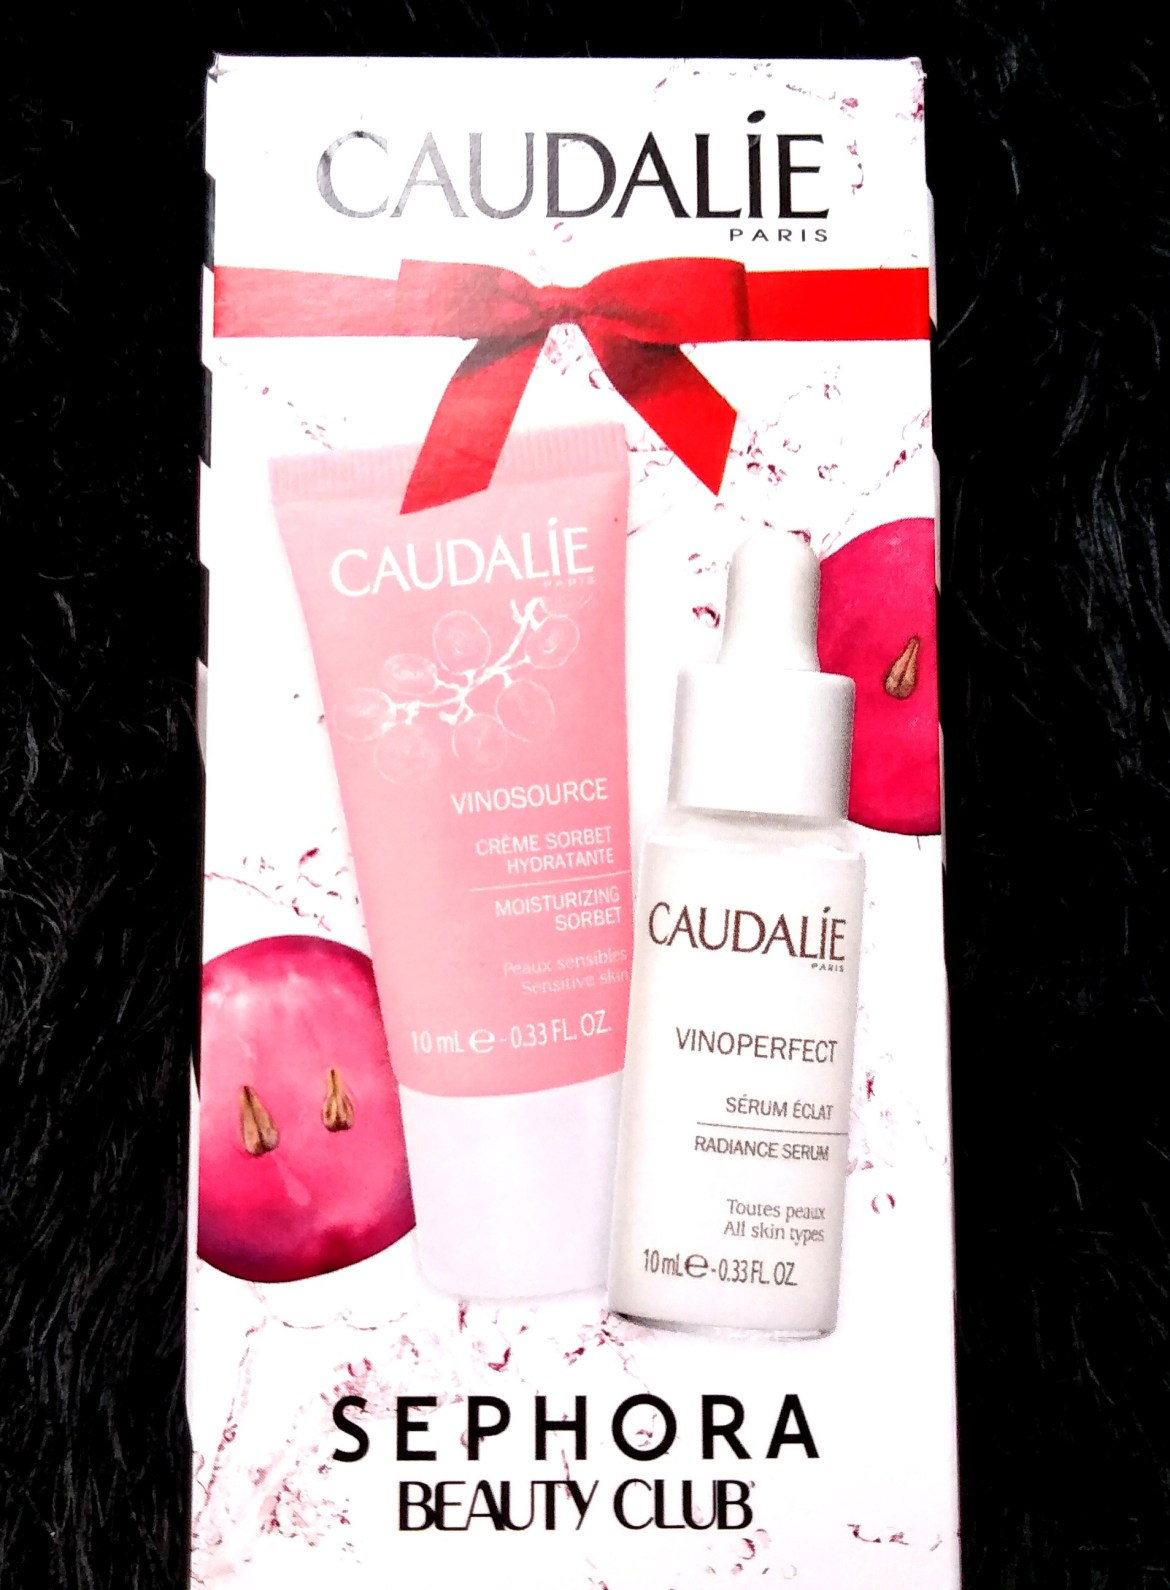 Caudalie vinosource vinoperfect